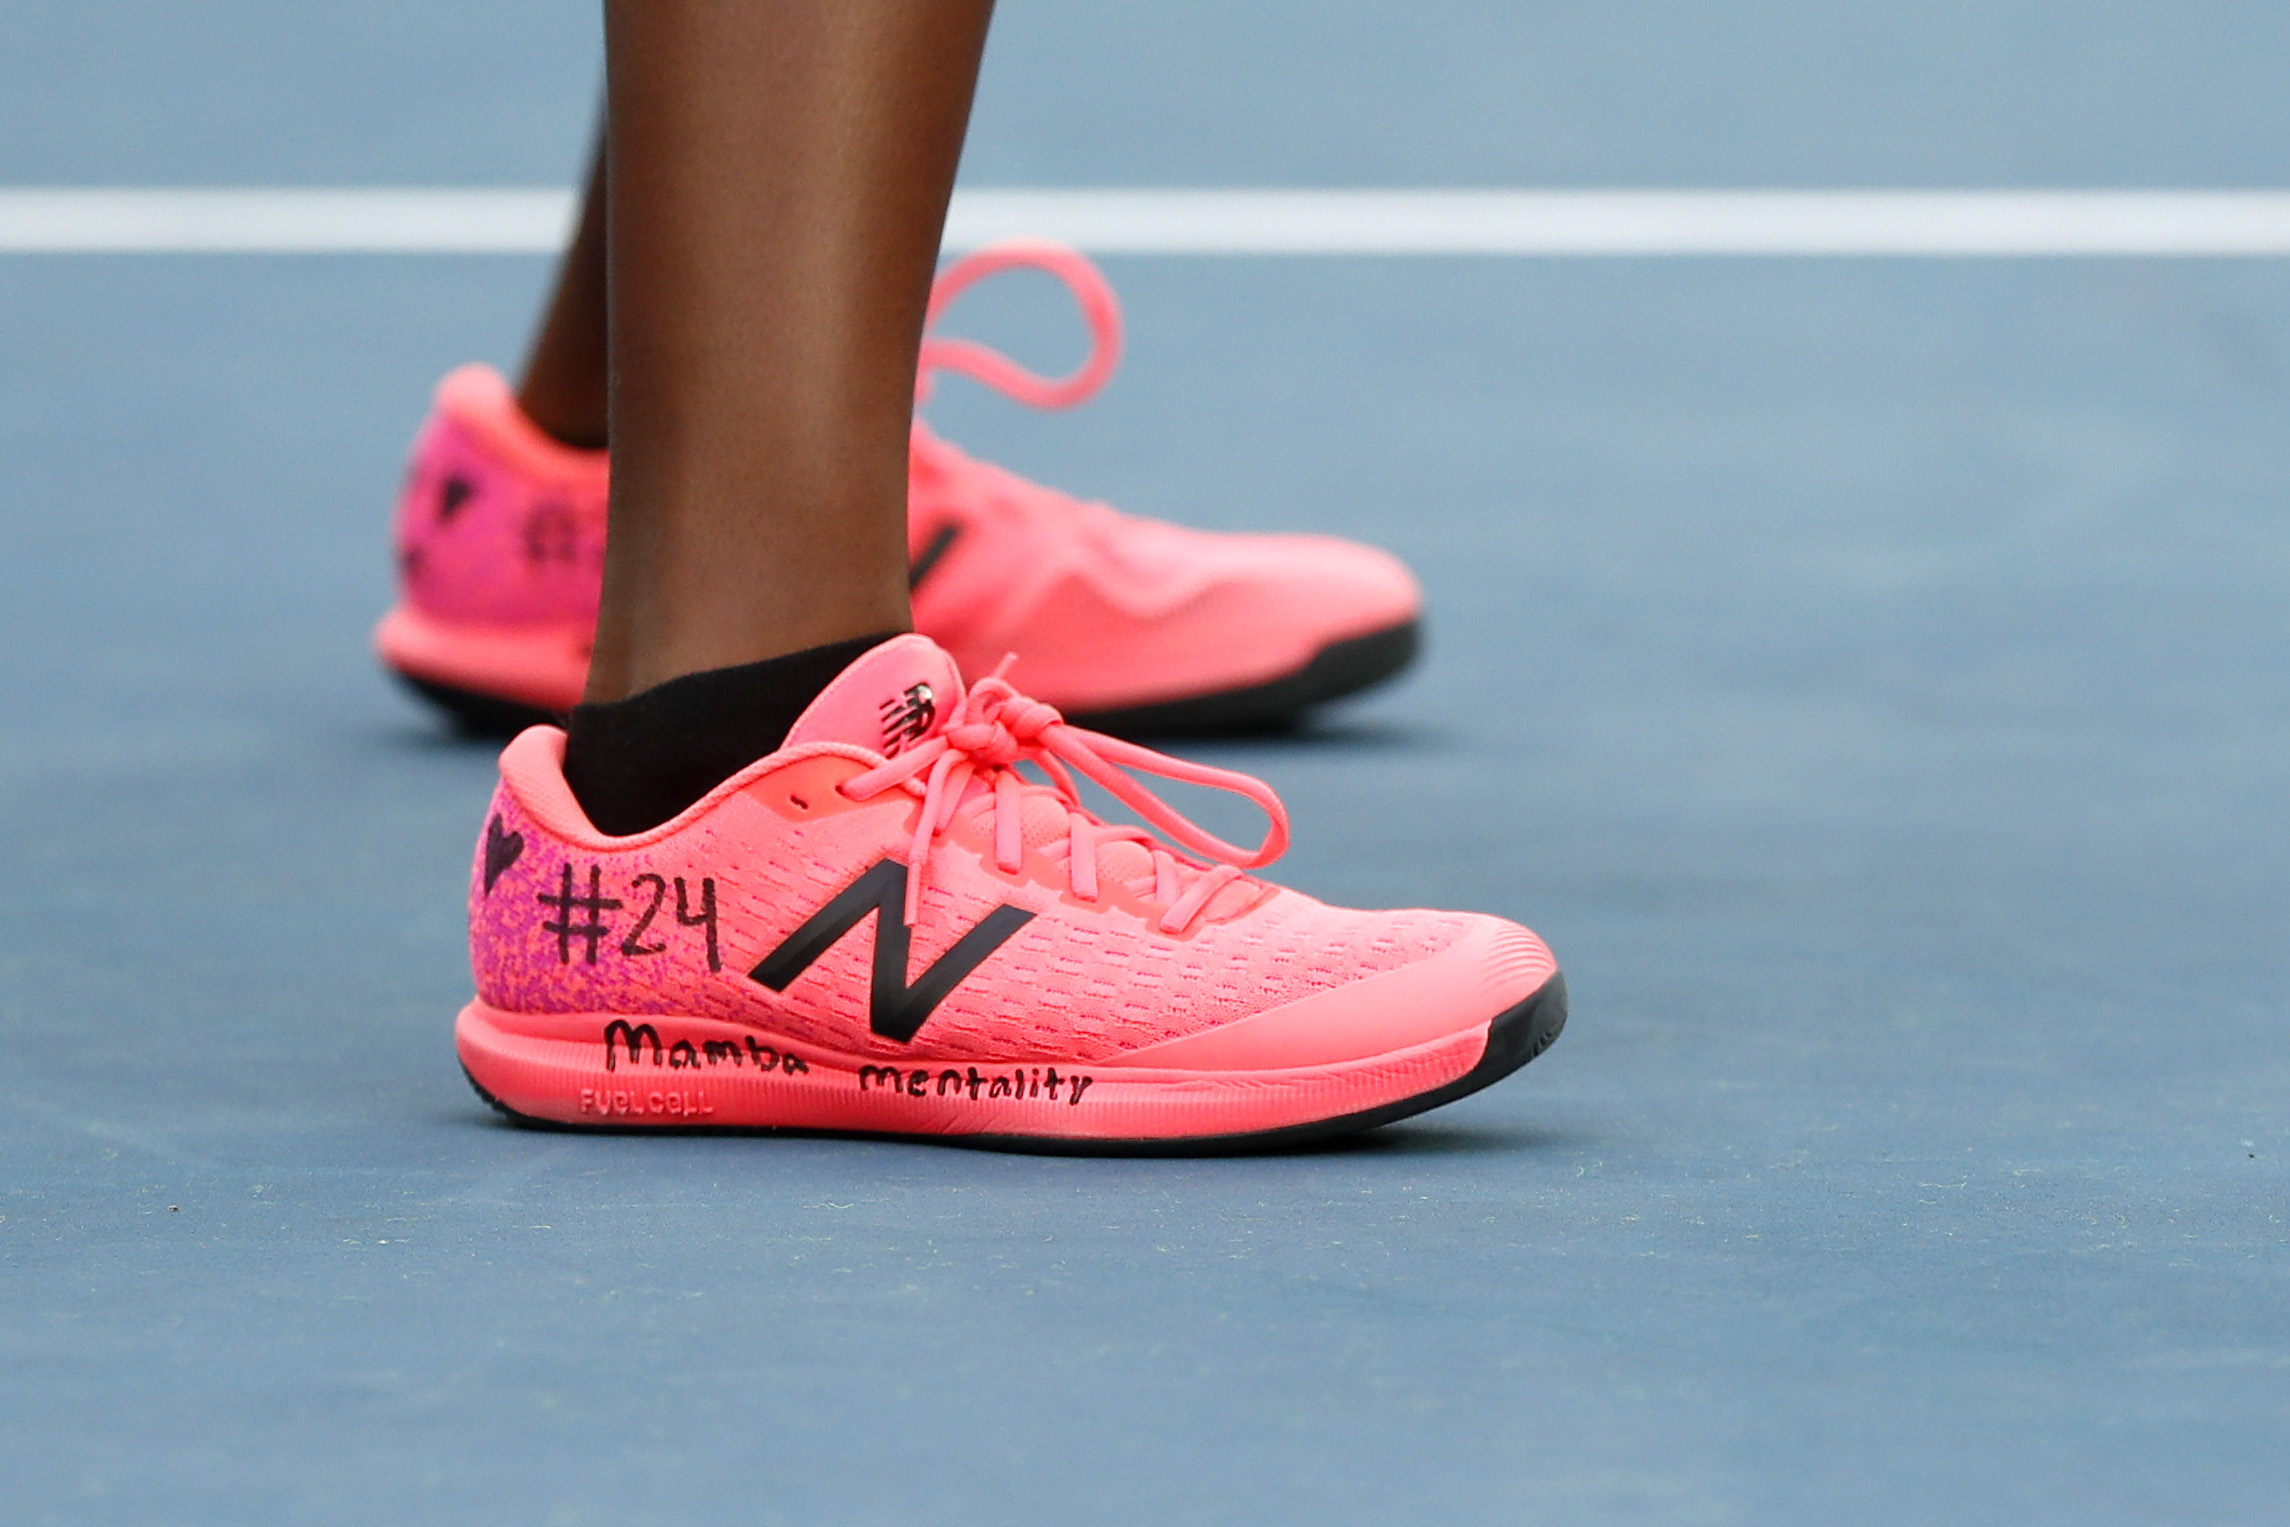 Coco Gauff wrote on her trainers in tribute to Bryant